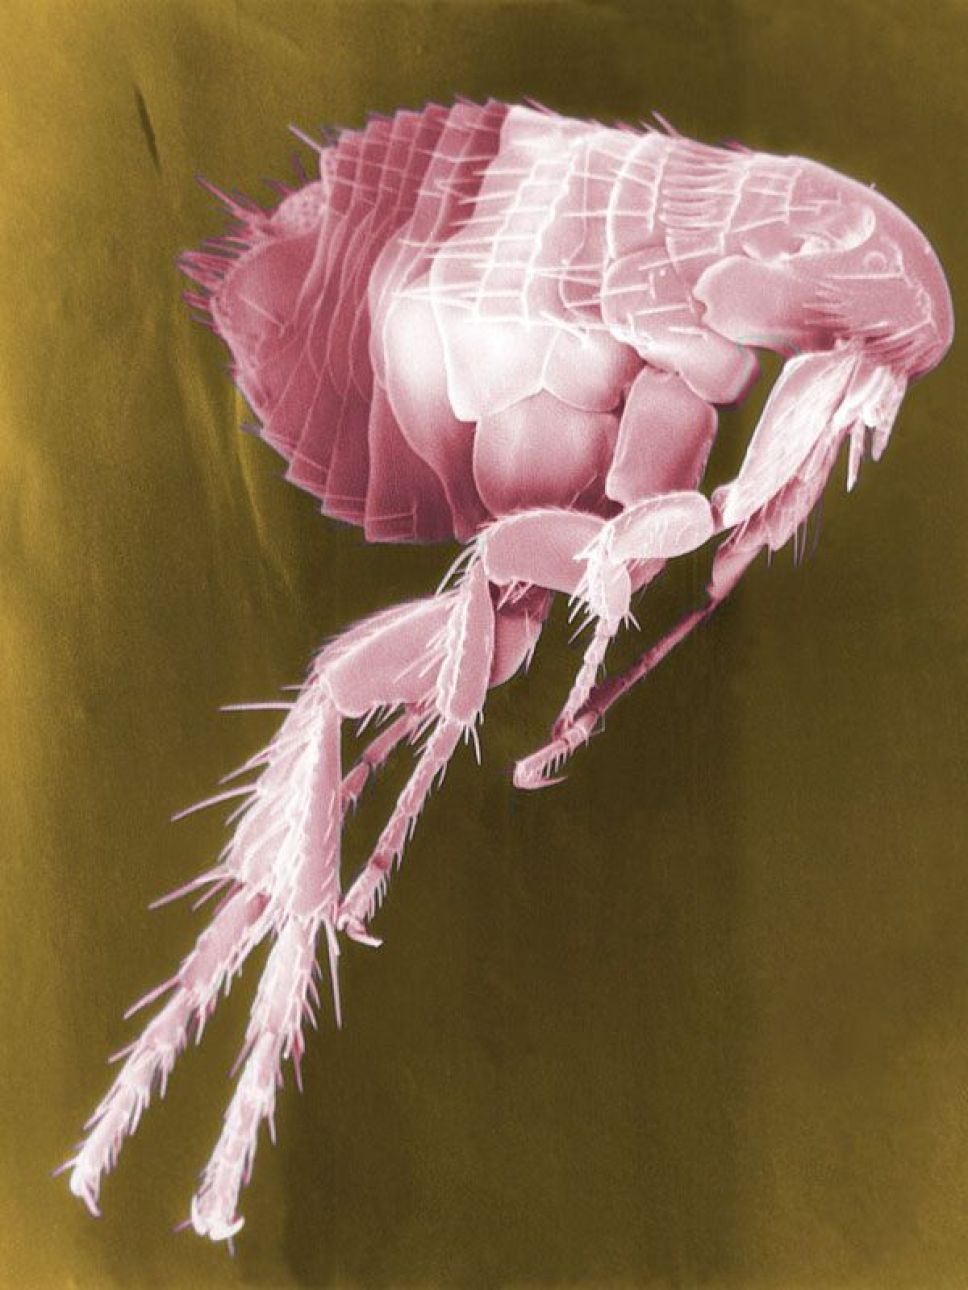 Fleas, like this one, carry many diseases that can infect humans when fleas bite. Not least among these diseases is plague, caused by the bacterium Yersinia pestis, which is blamed for causing the Black Death in Europe.